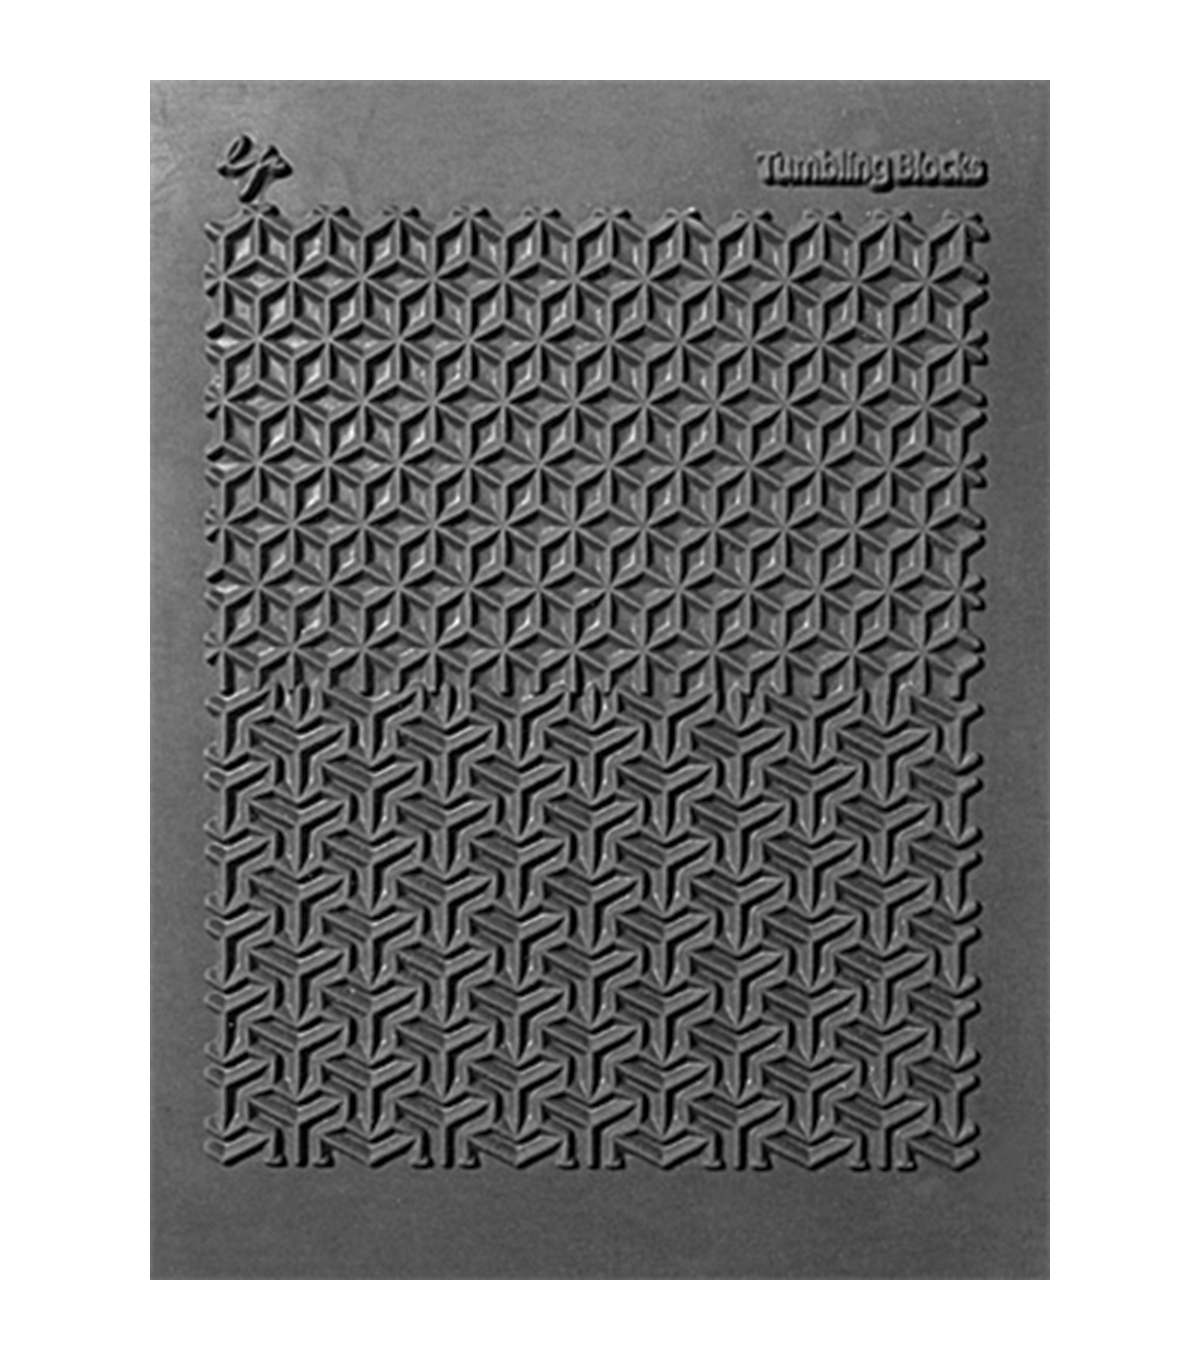 Great Create Pavelka Texture Stamp - Tumbling Blocks